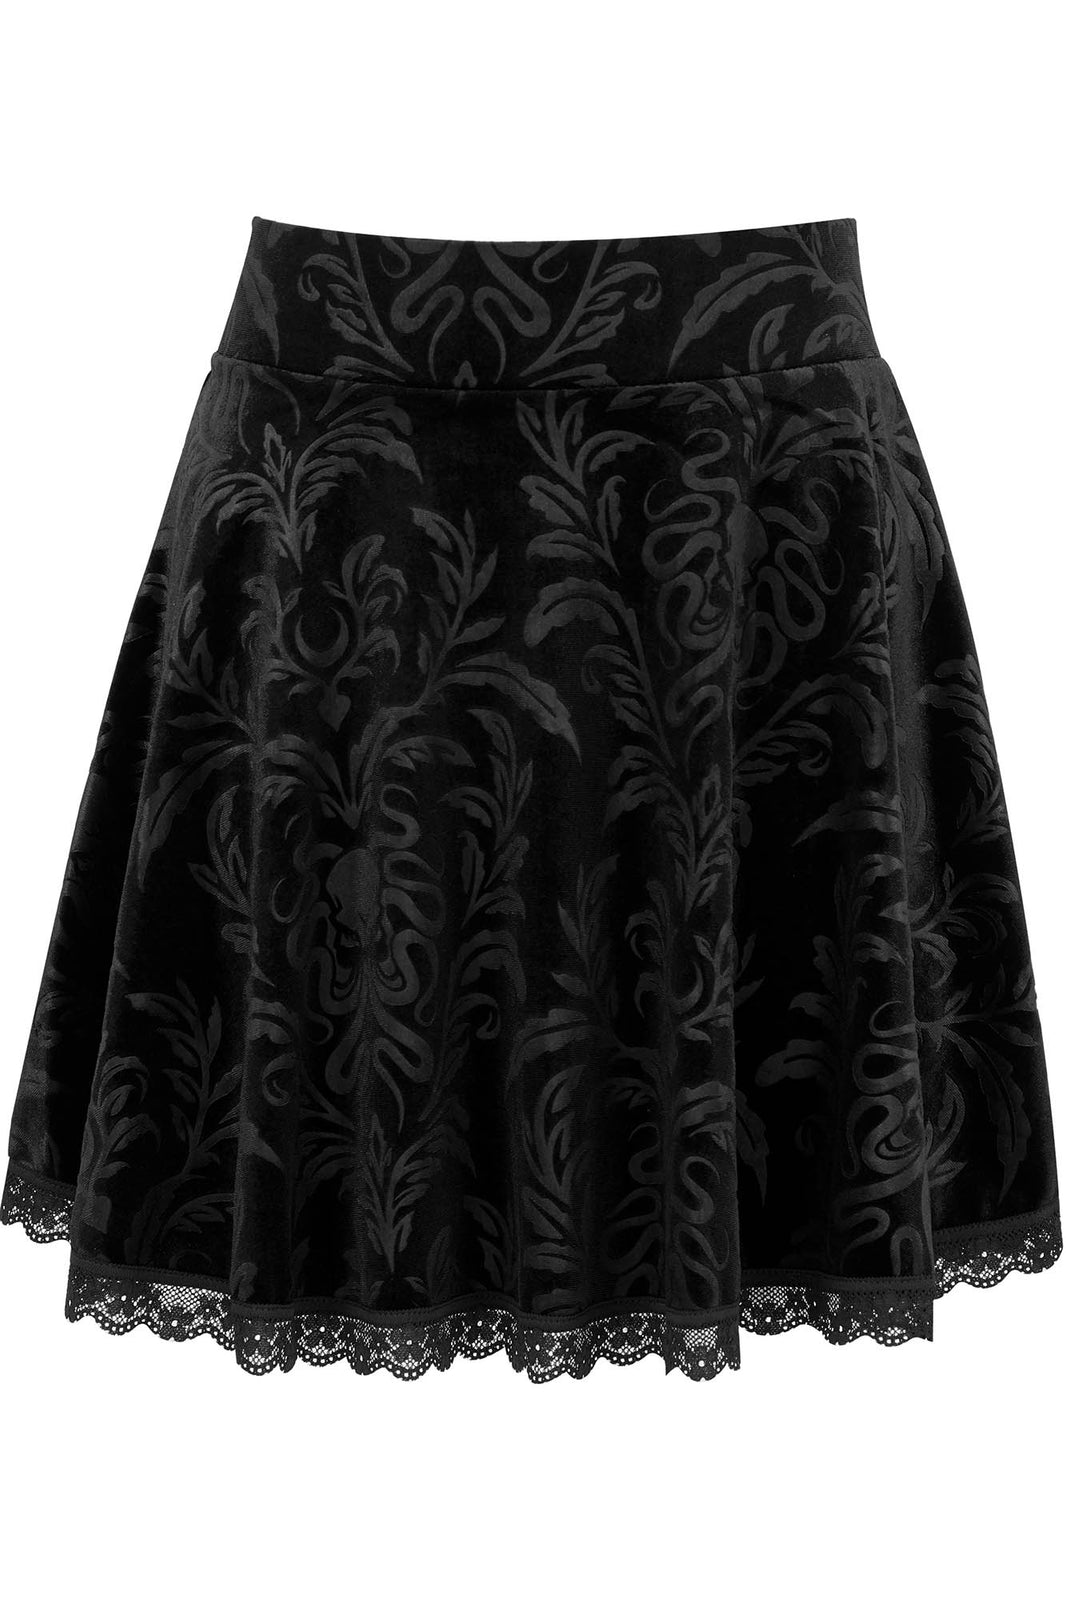 Depths Skater Skirt